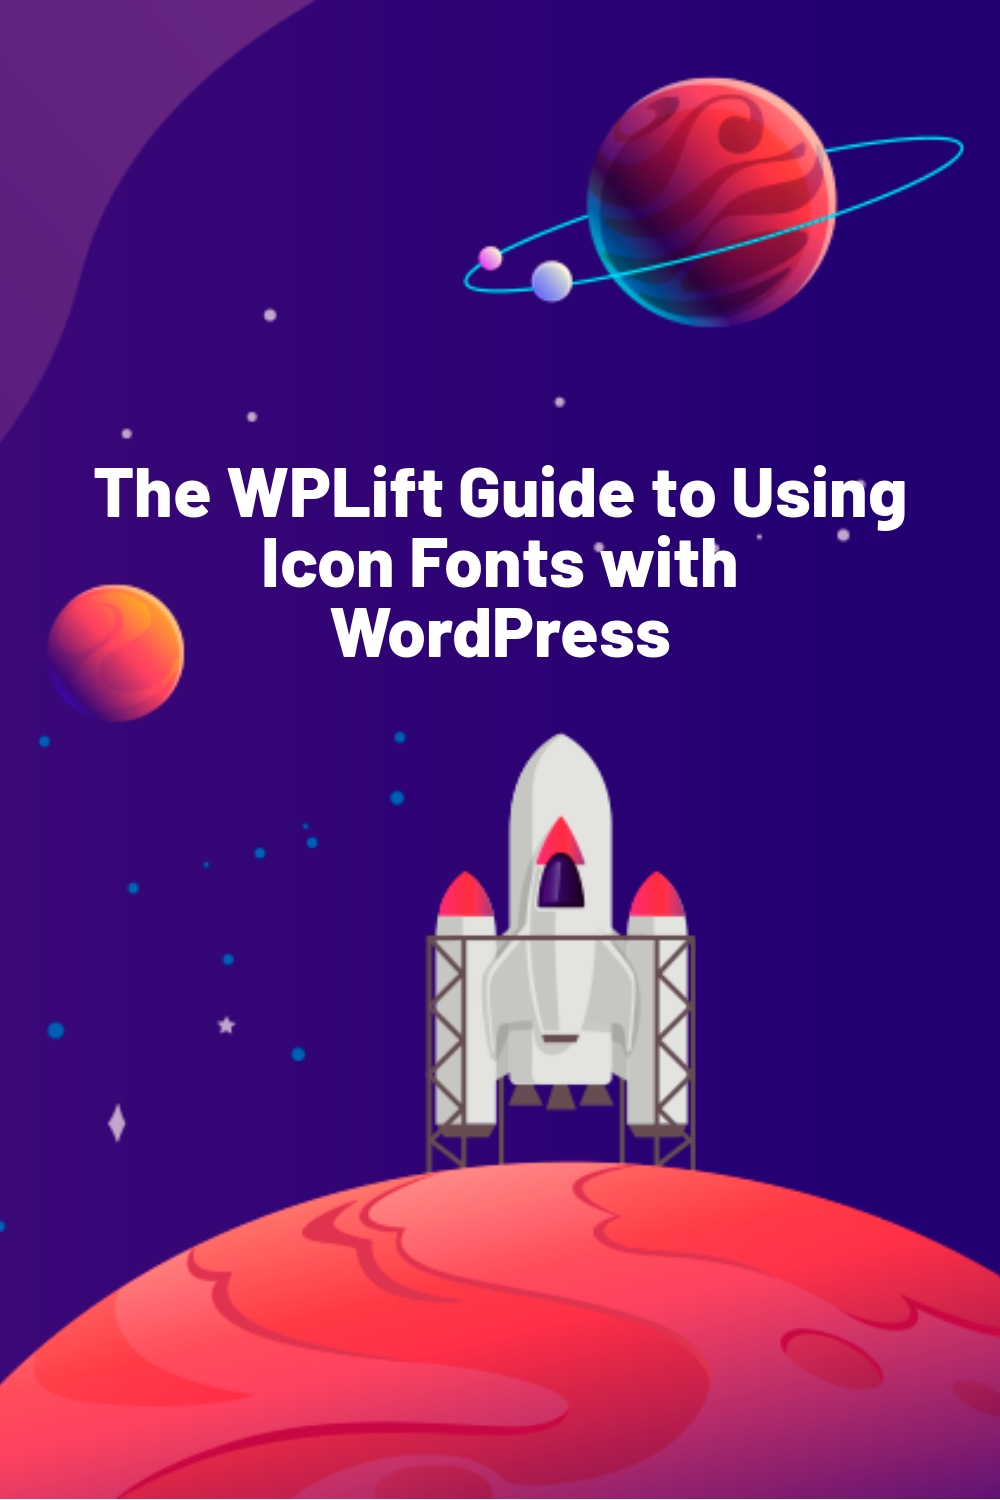 The WPLift Guide to Using Icon Fonts with WordPress